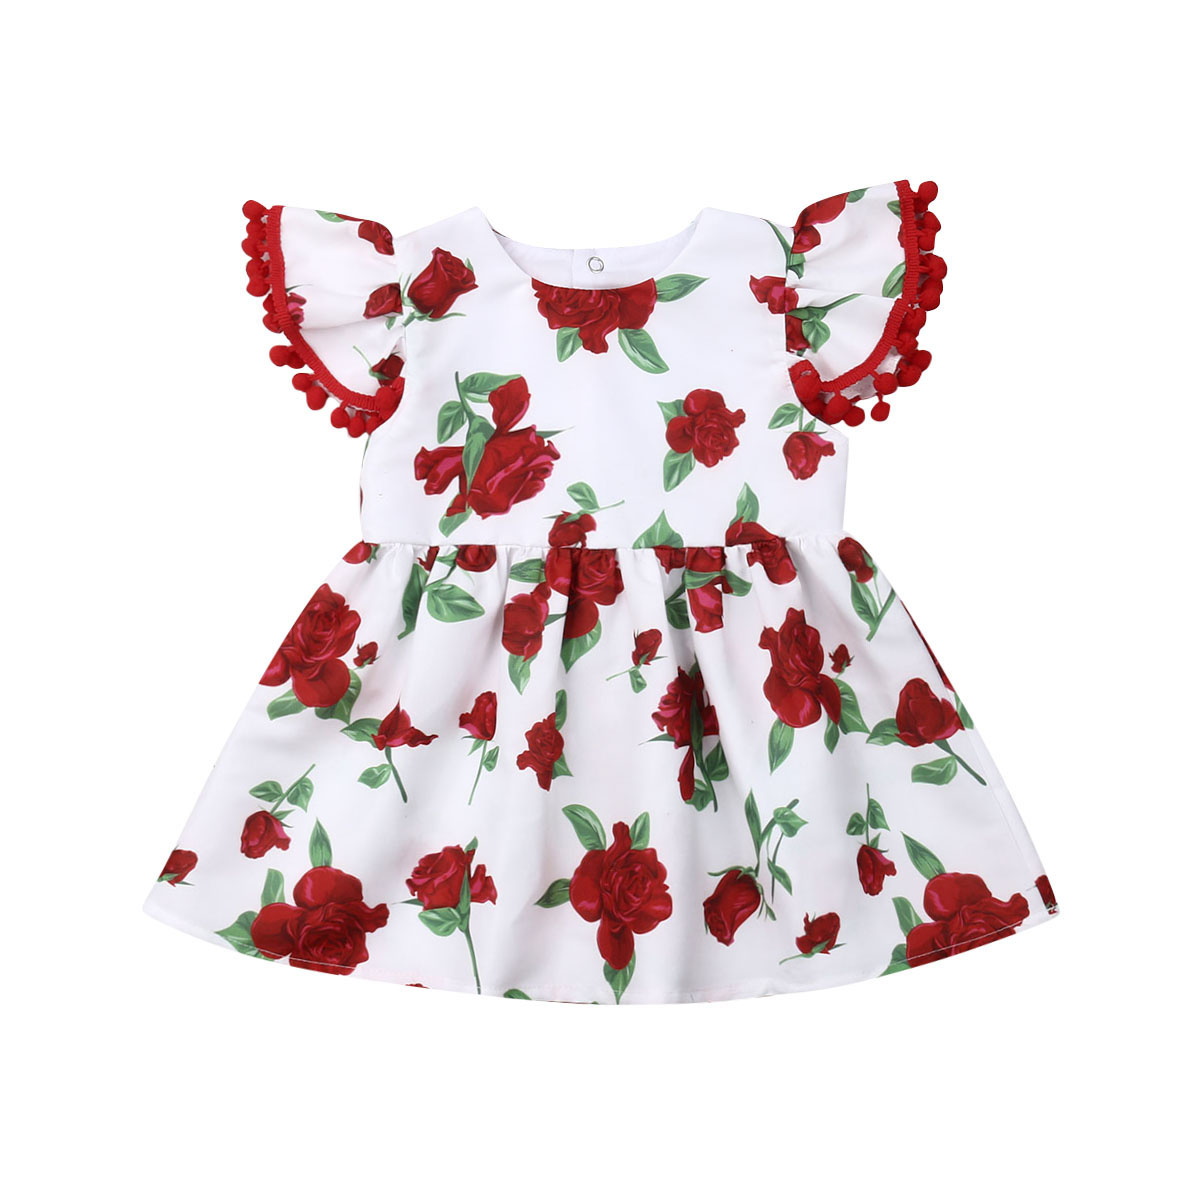 2019 Summer Kids Baby Girl Fly Sleeve Rose Flower Princess Girls Dress Formal Pageant Party Holiday Dresses Clothes